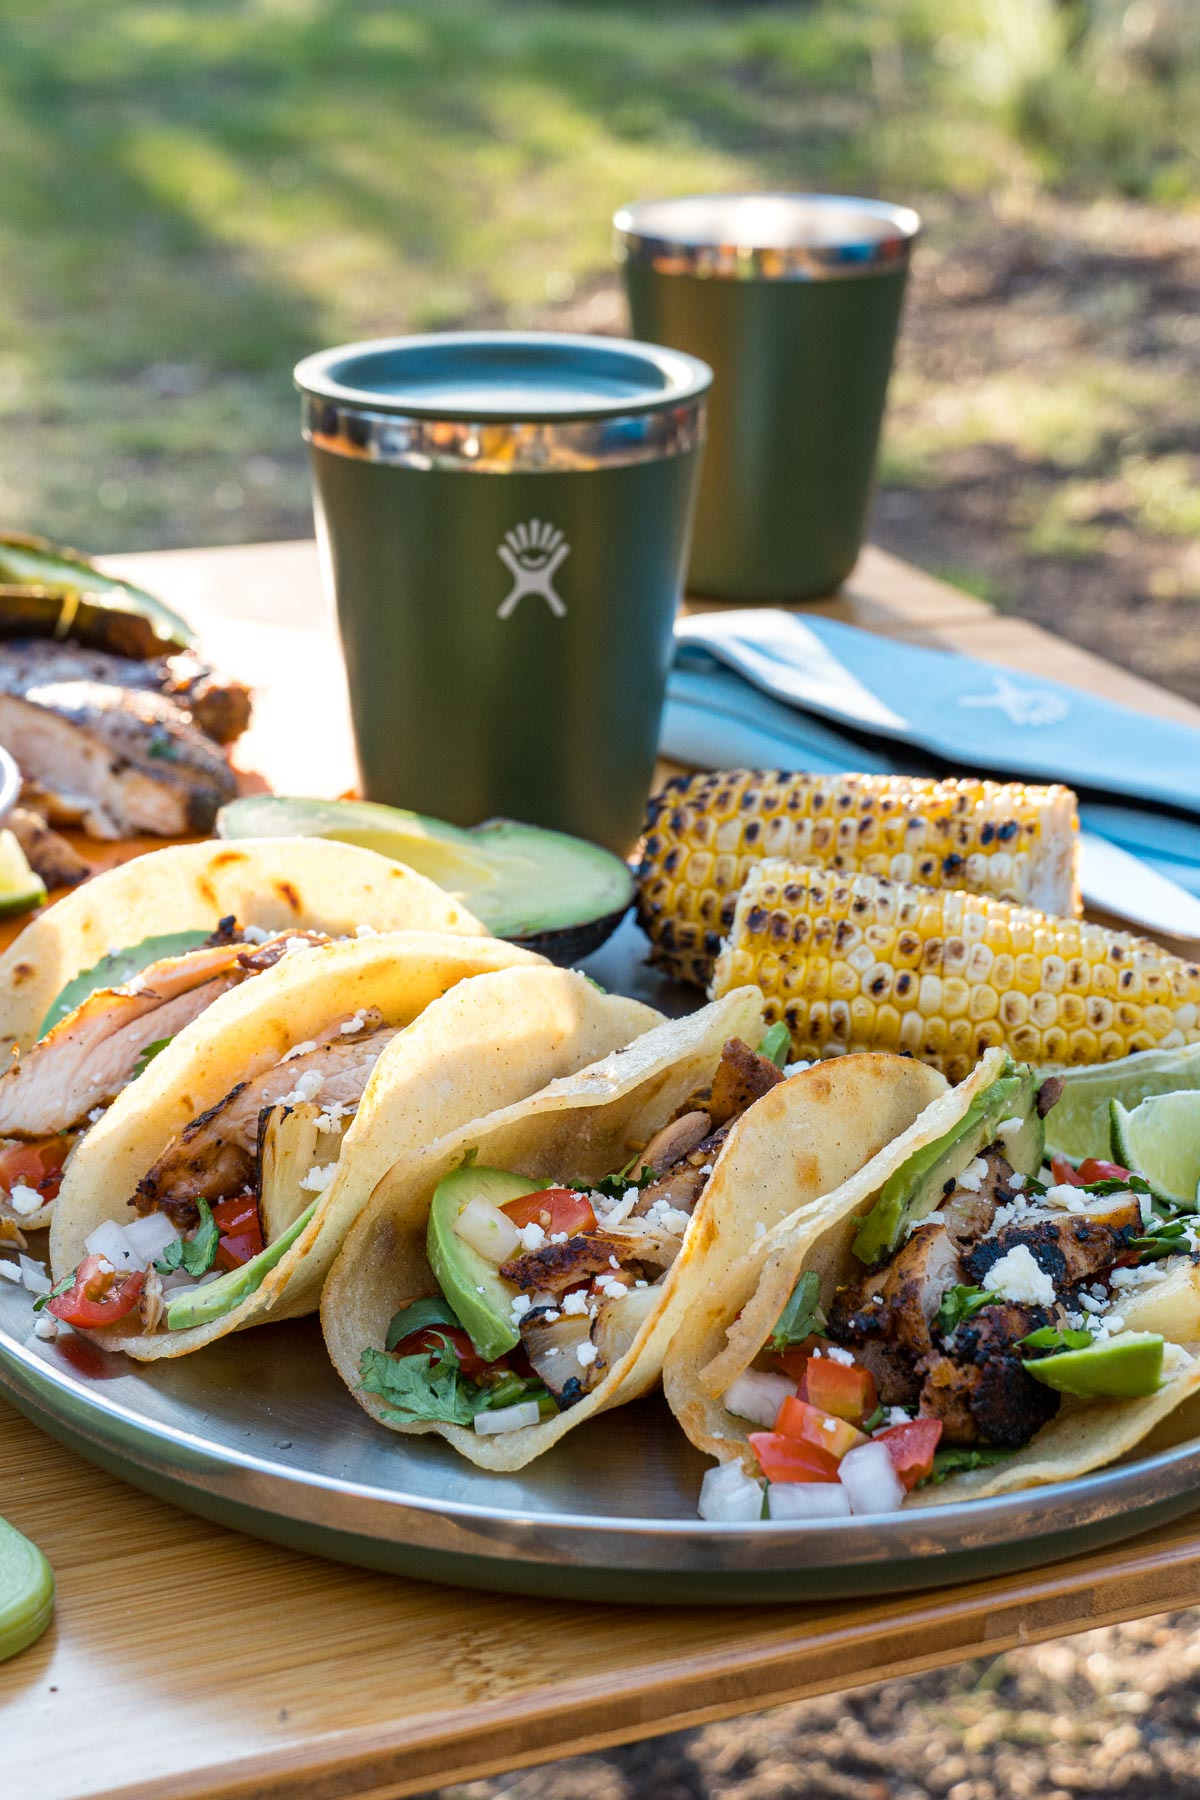 Four grilled chicken tacos on a plate with a green drinking glass in the background